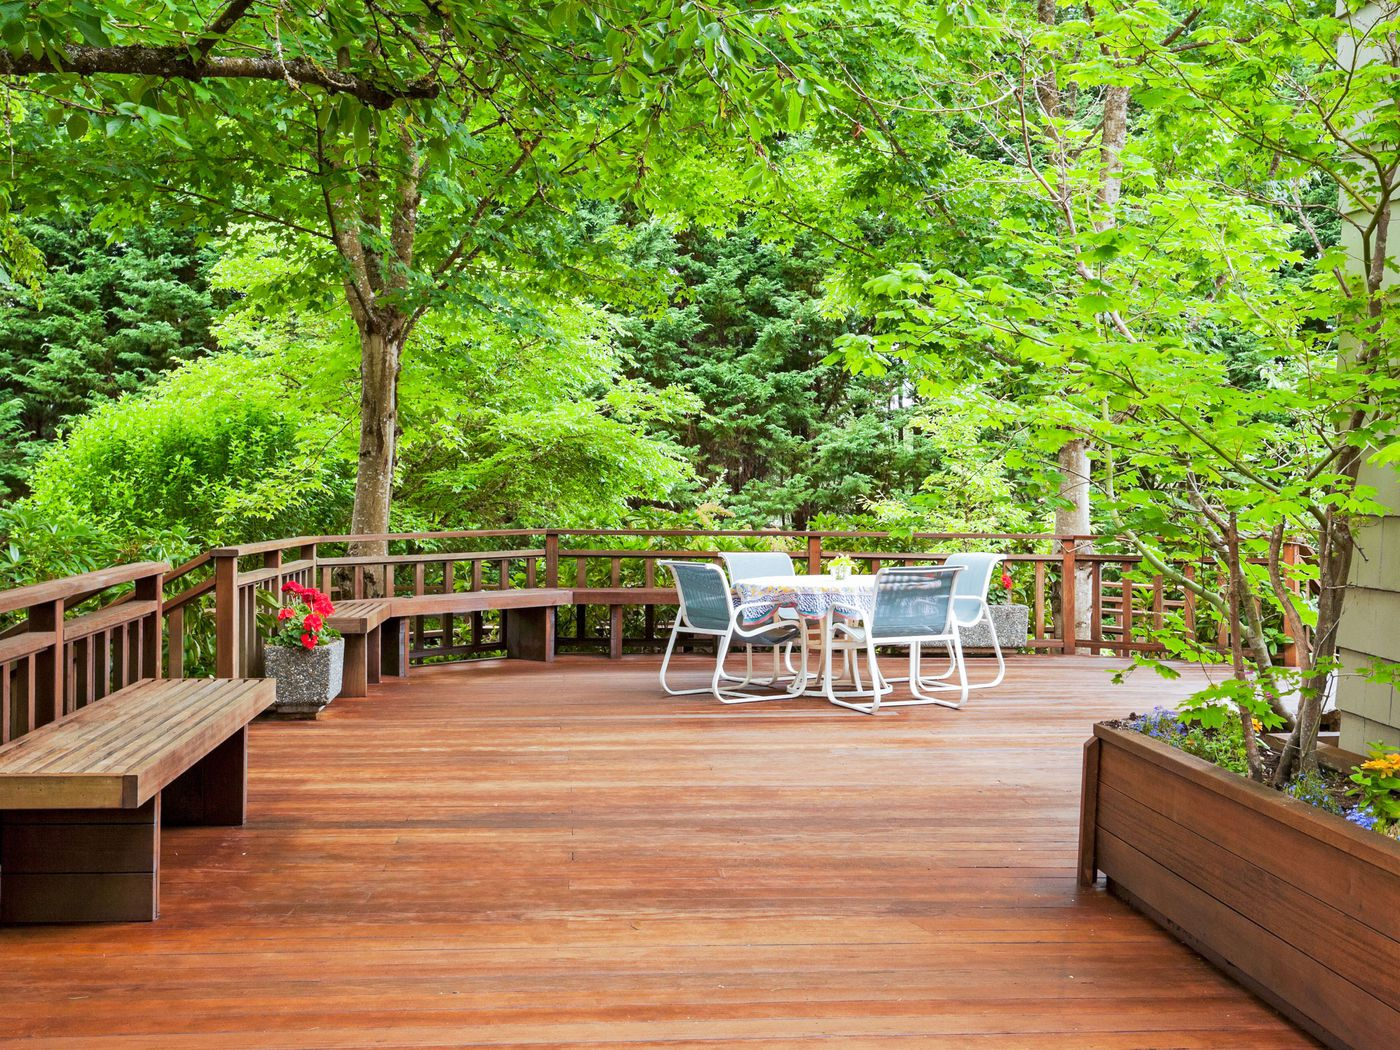 How to Restore a Deck?